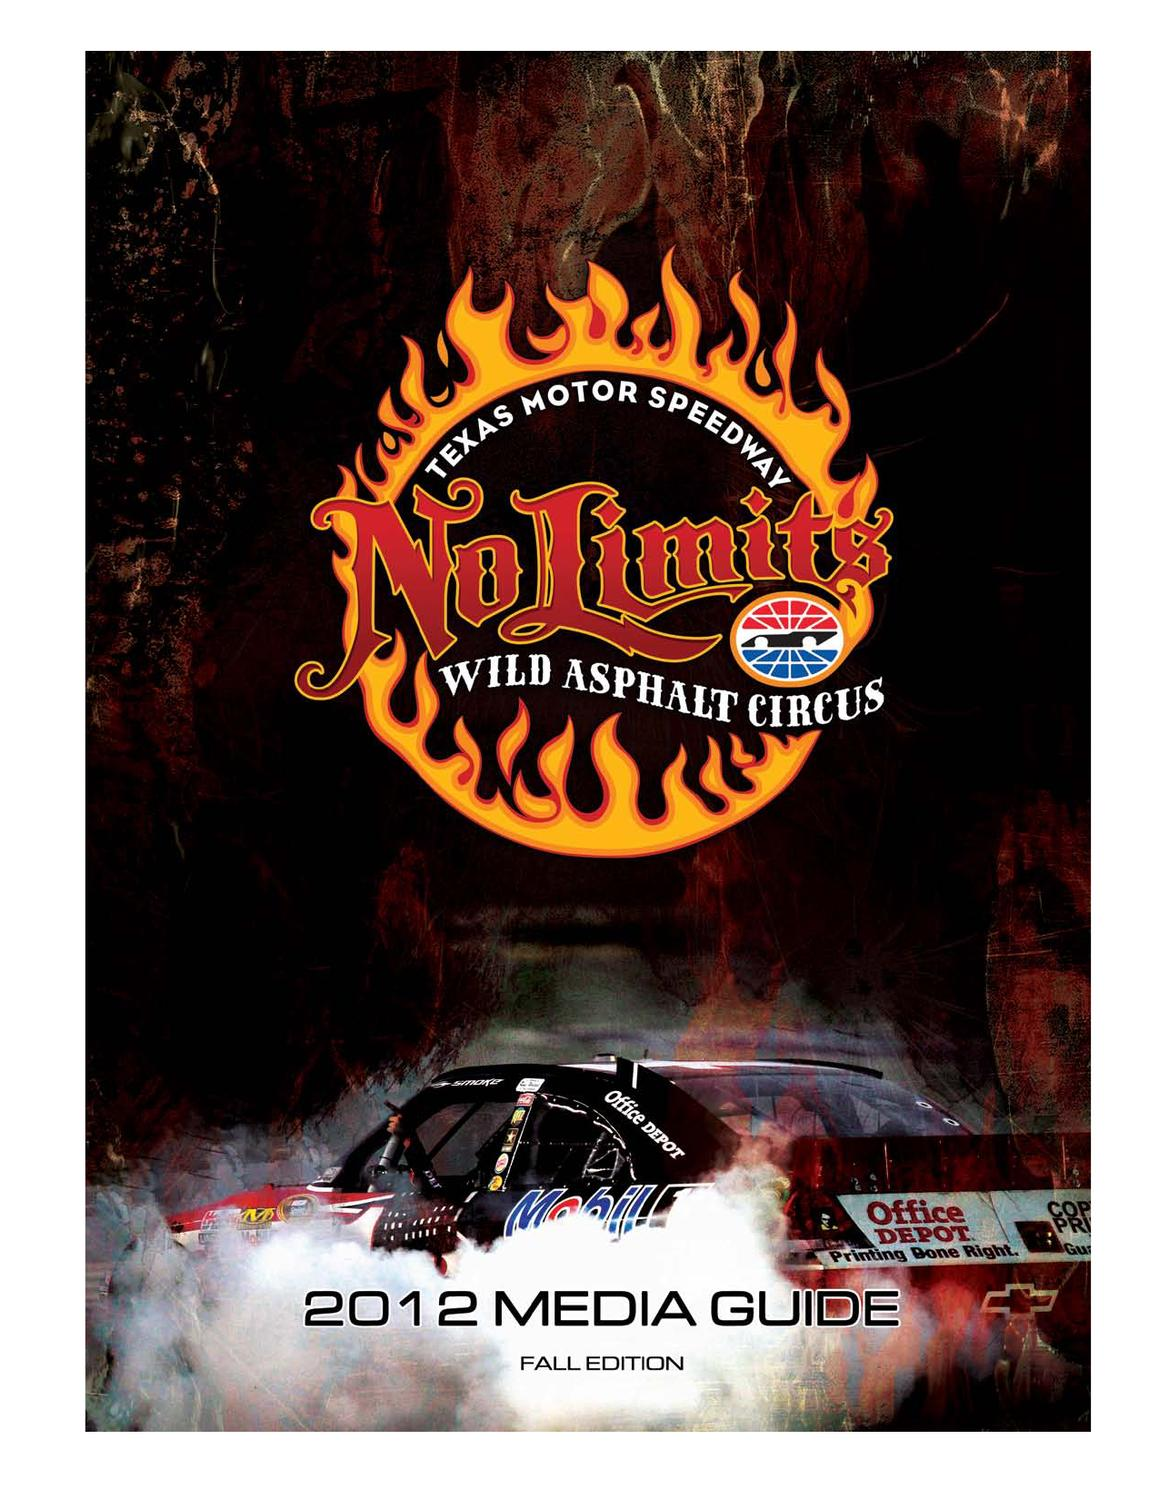 2012 Texas Motor Speedway Media Guide Fall Edition By Dave